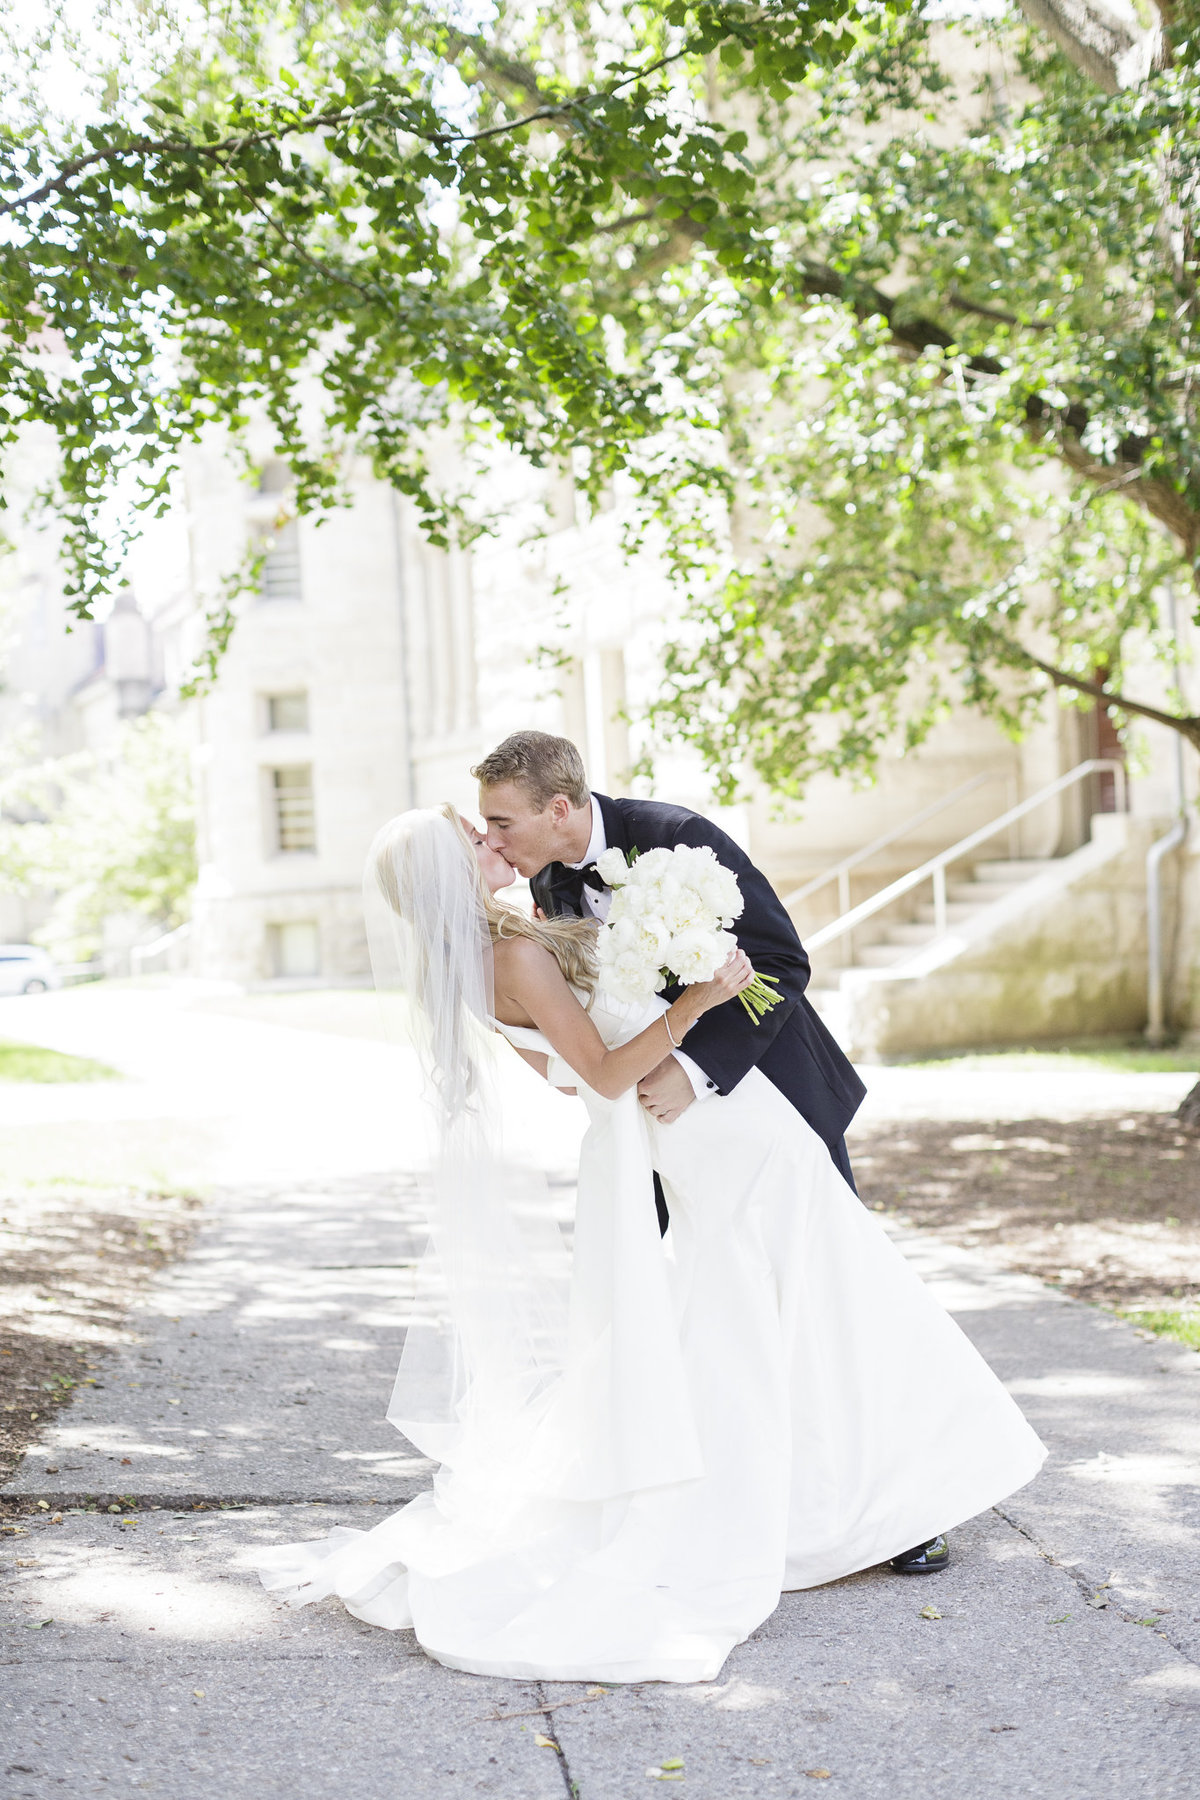 A wedding on the campus of Indiana University